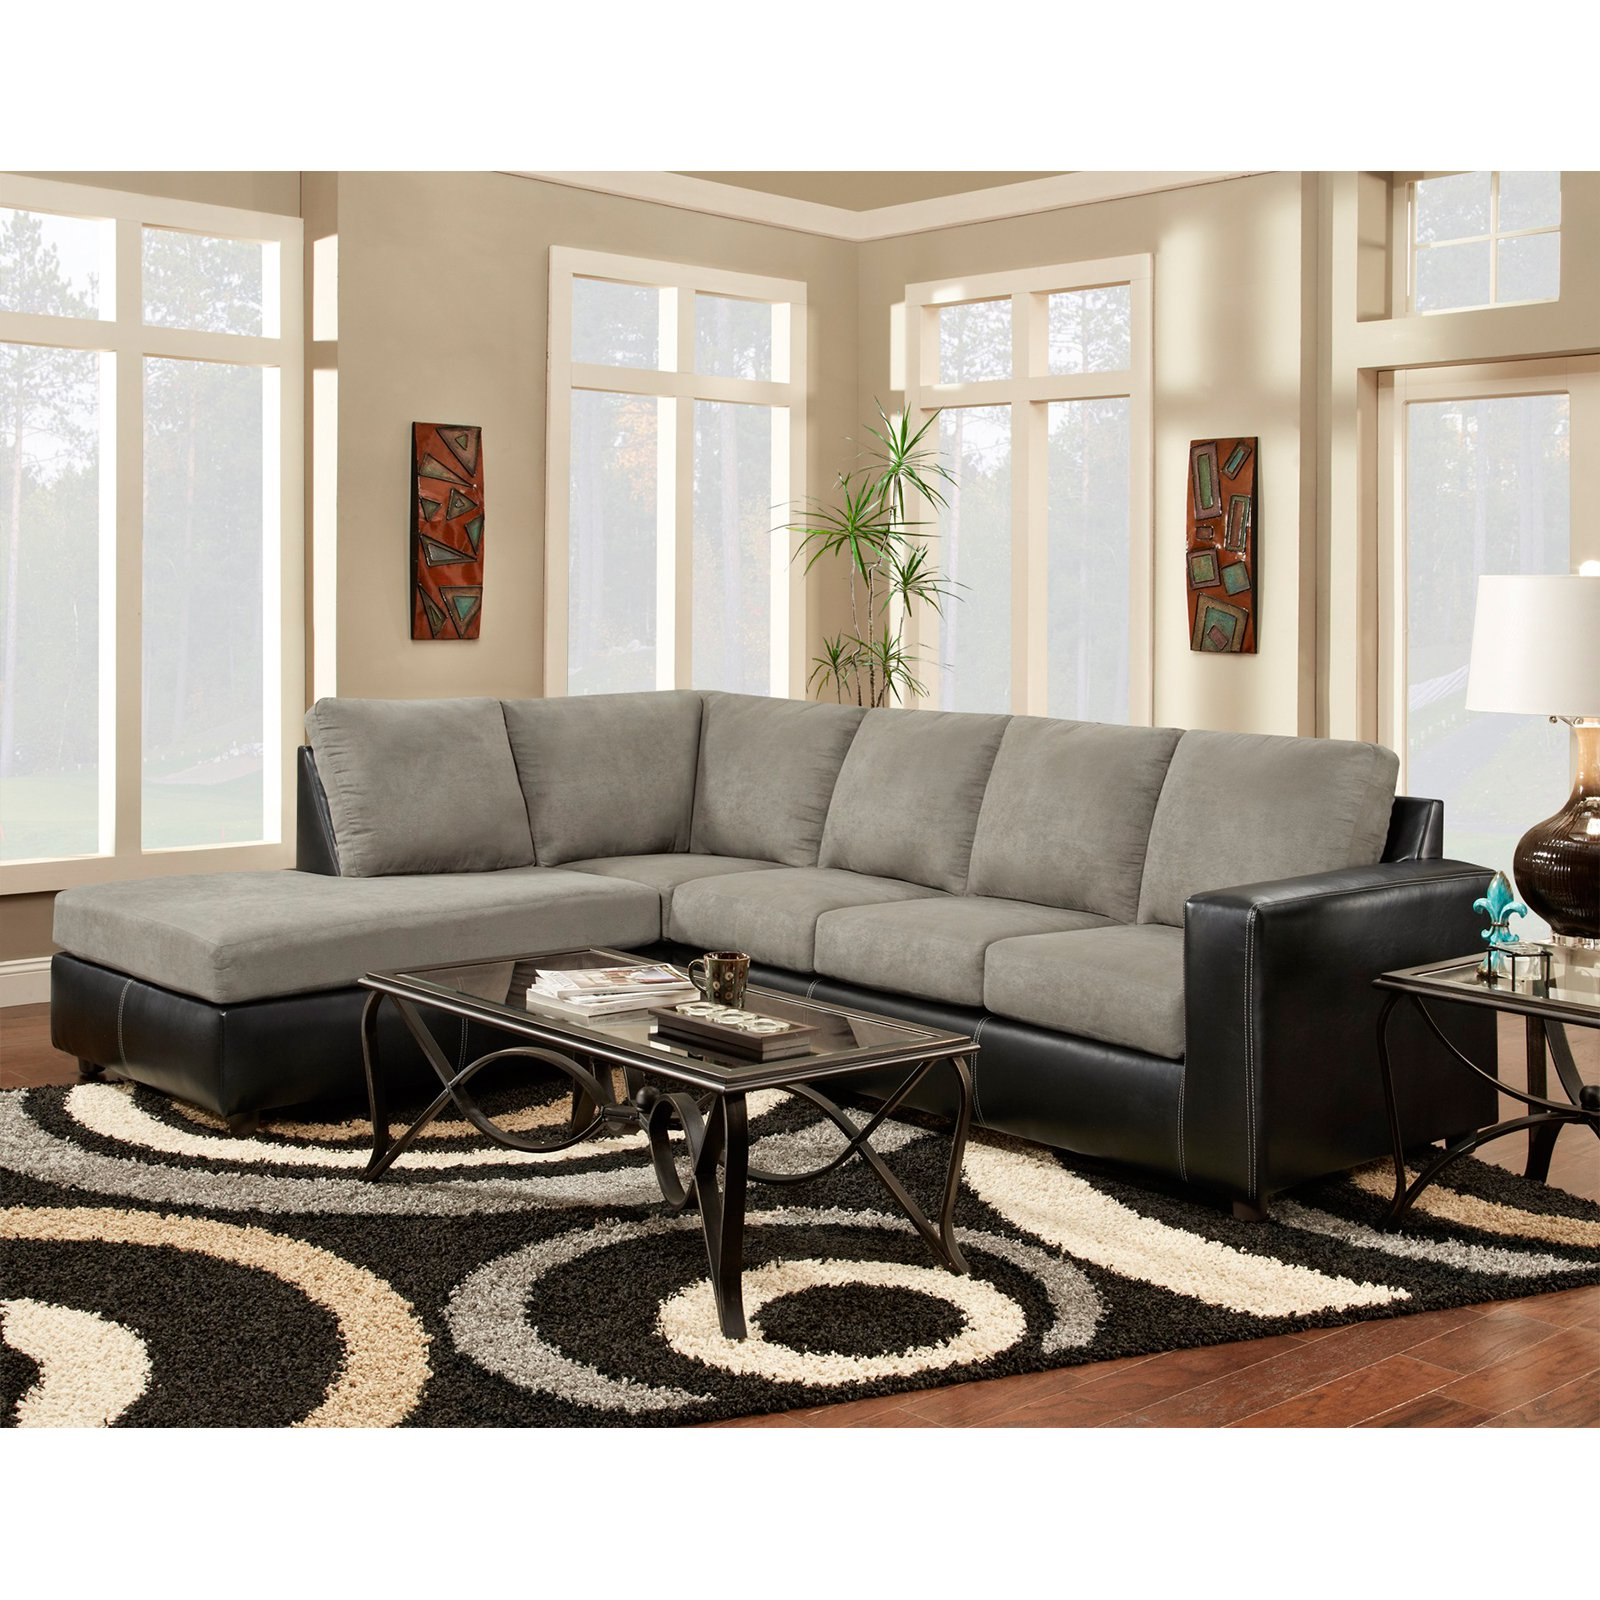 Chelsea Home Furniture Harford 2 Piece Sectional Sofa